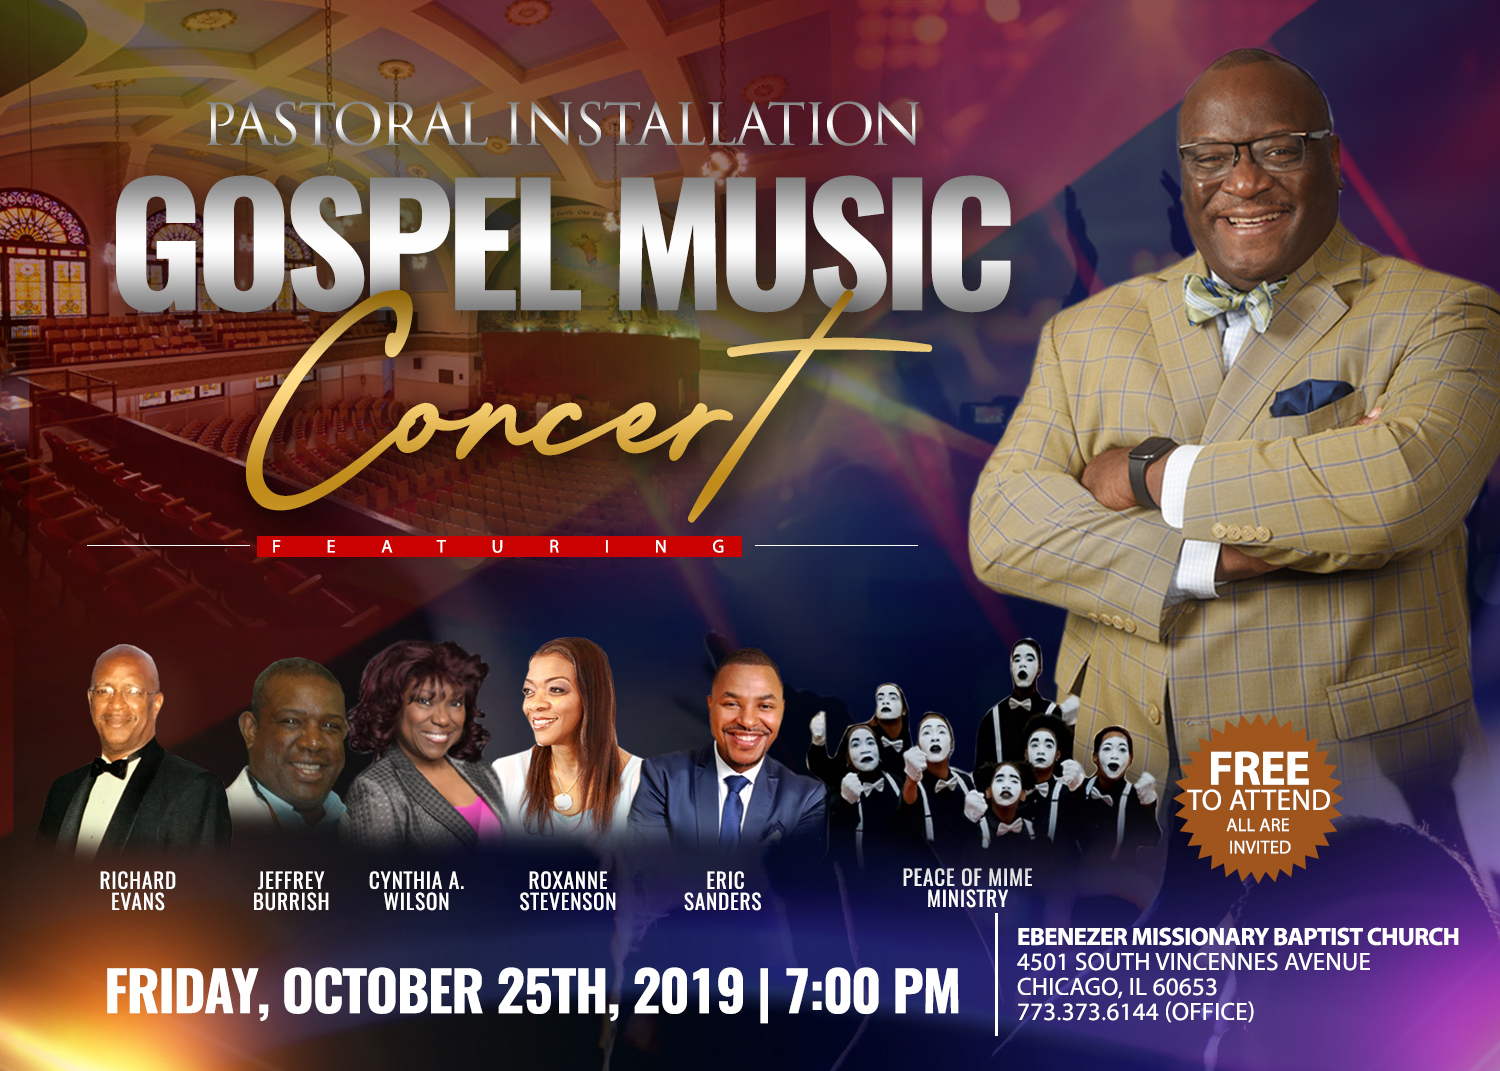 Installation Gospel Music Concert - Final